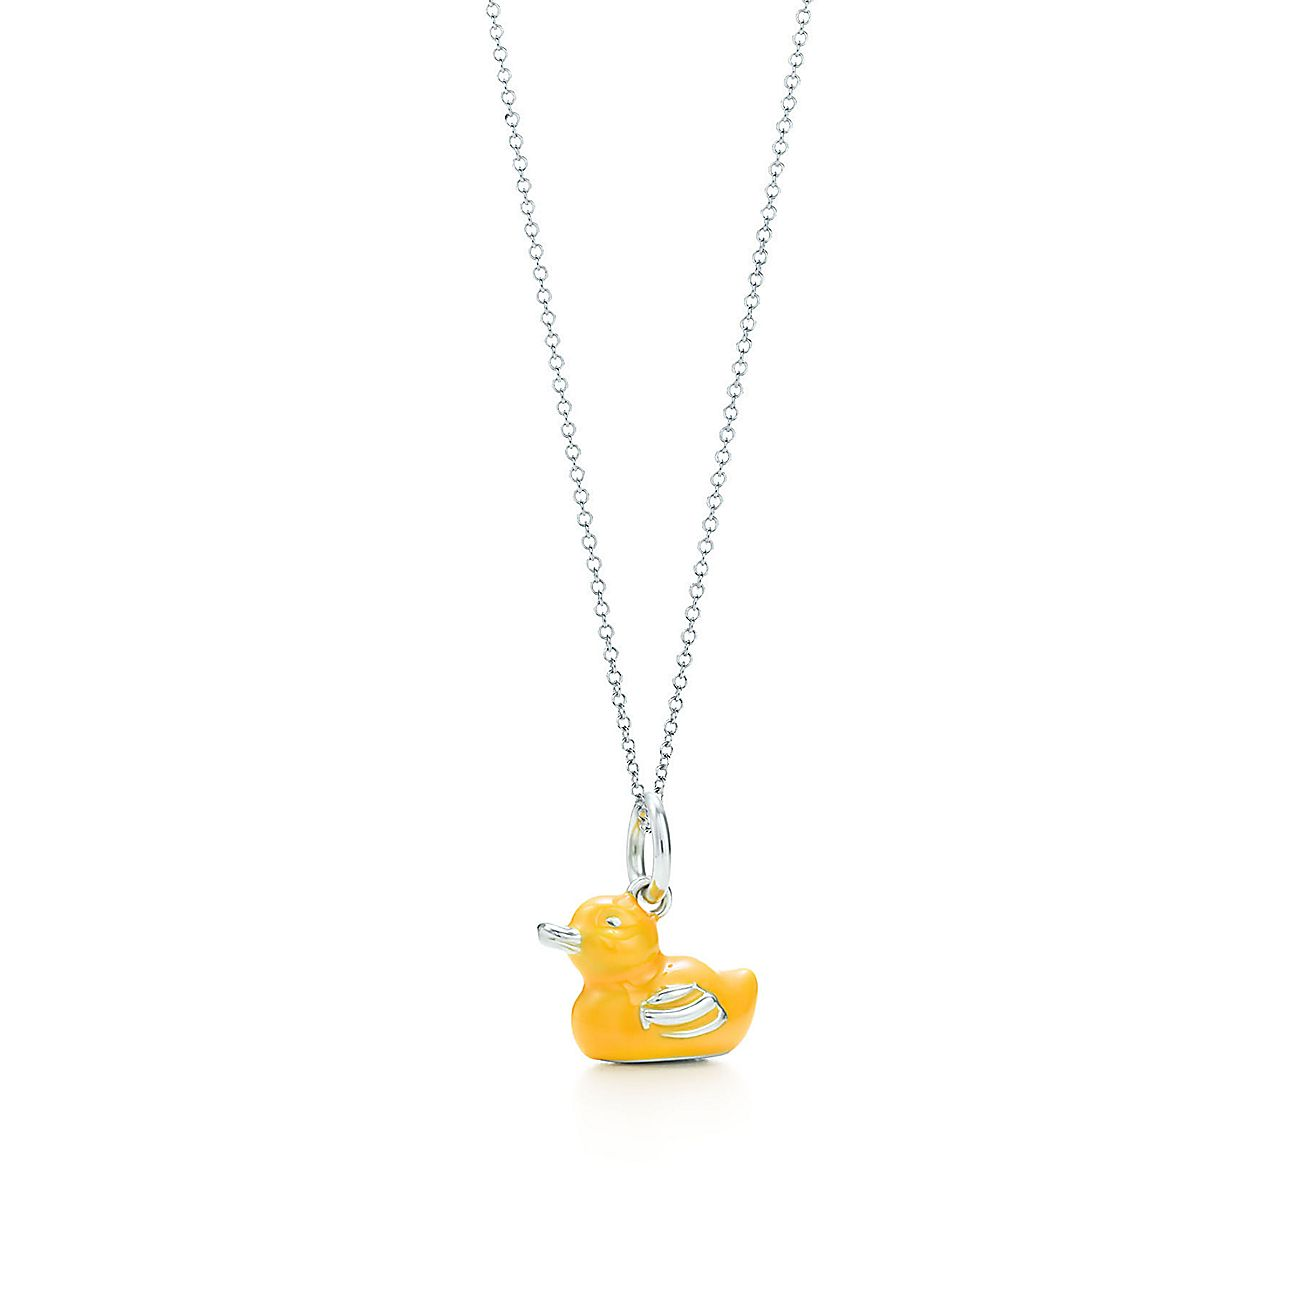 Yellow duck<br>charm and chain